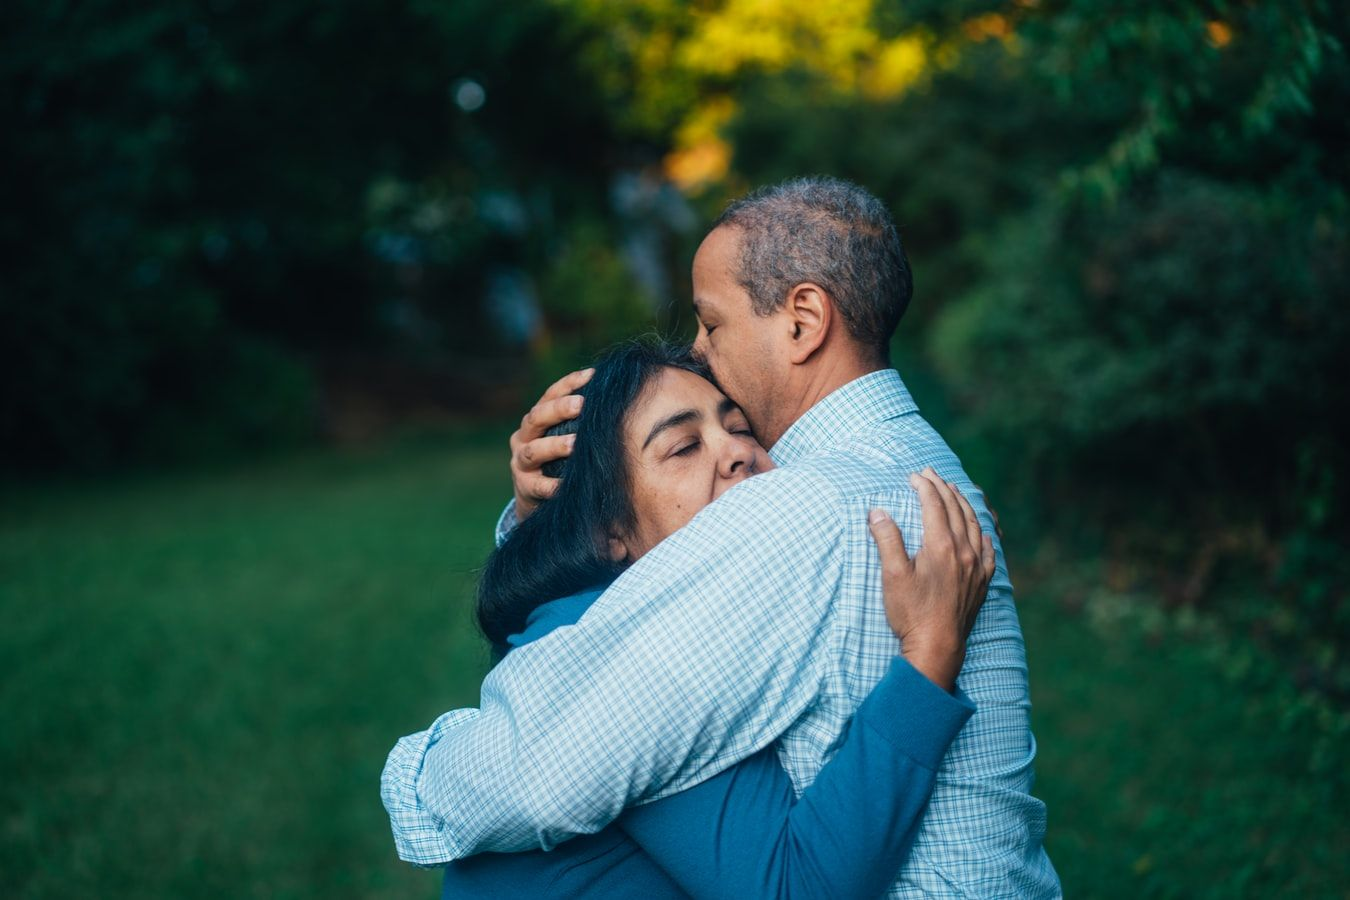 Is your relationship strained?